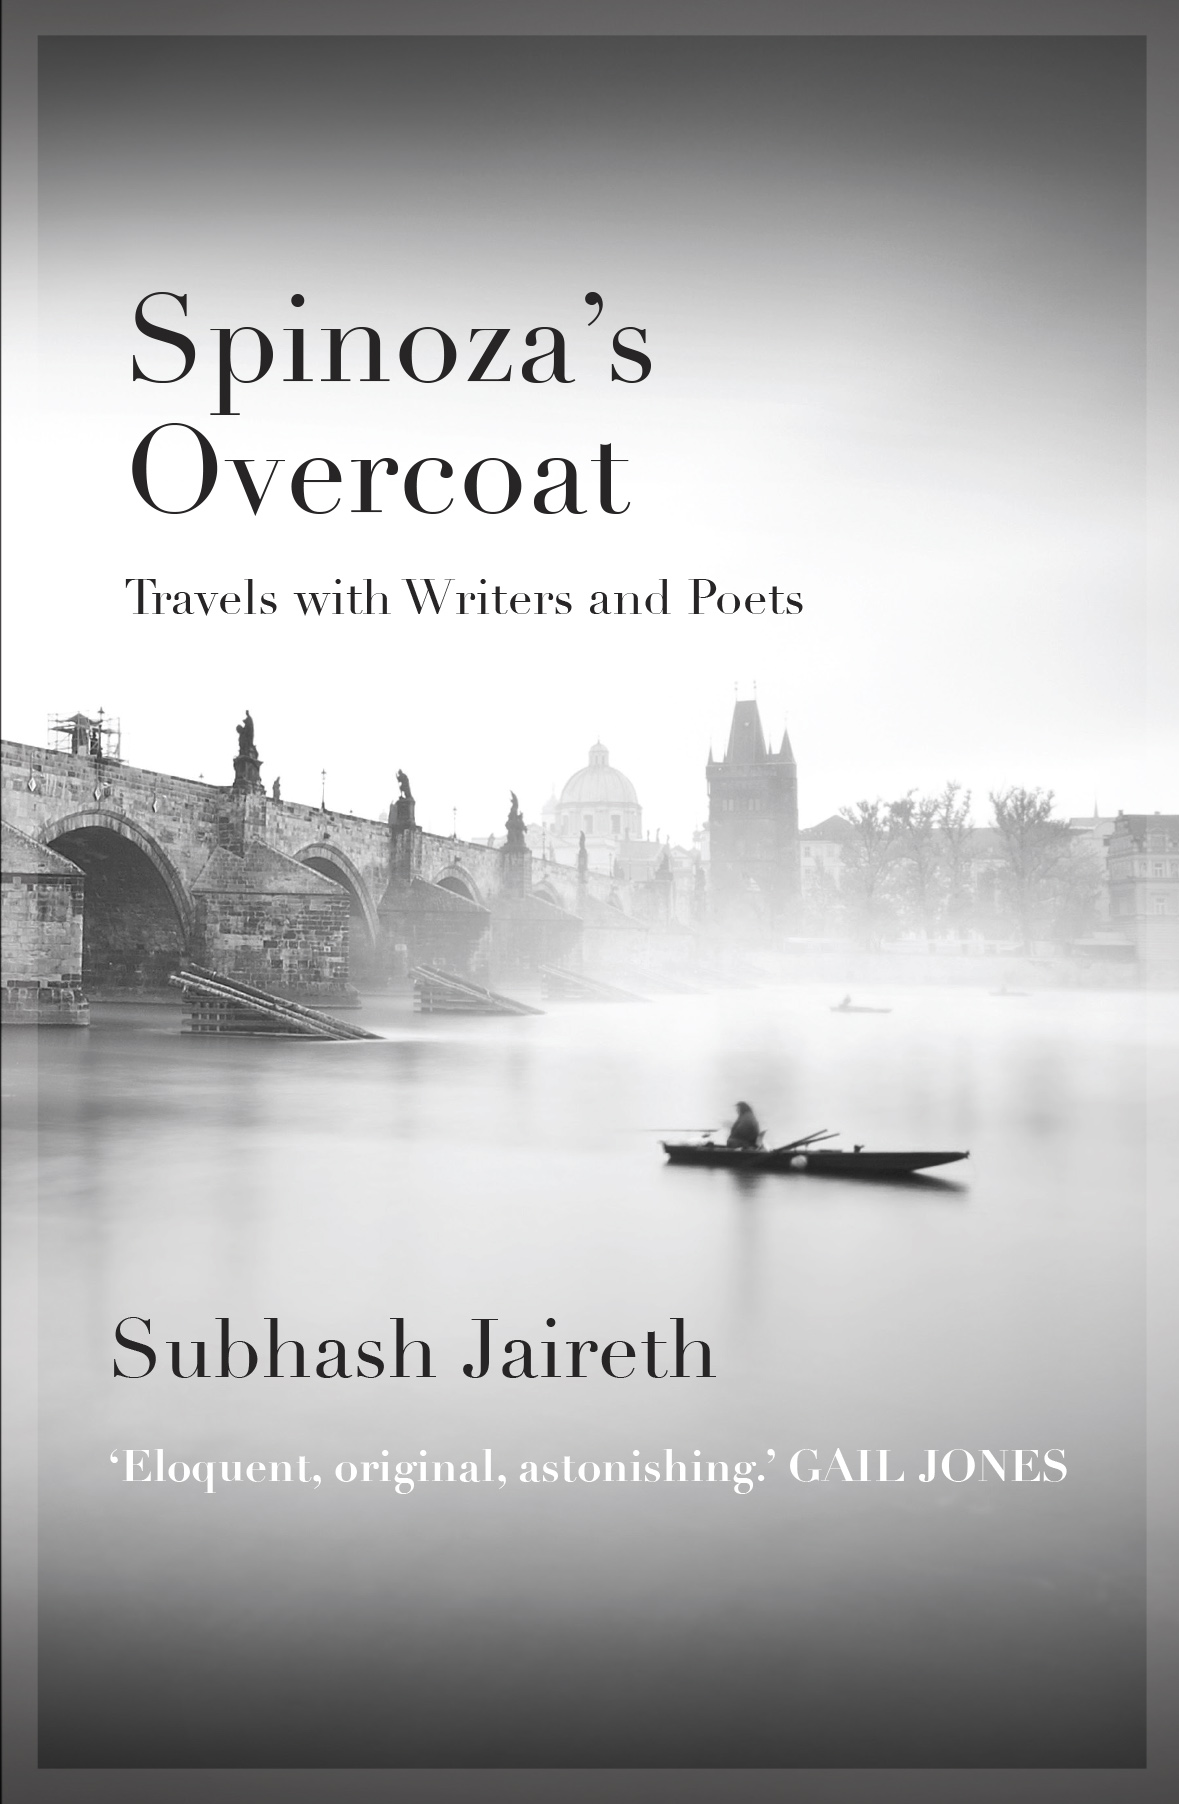 Spinoza's Overcoat: Travels with Writers and Poets Book Launch